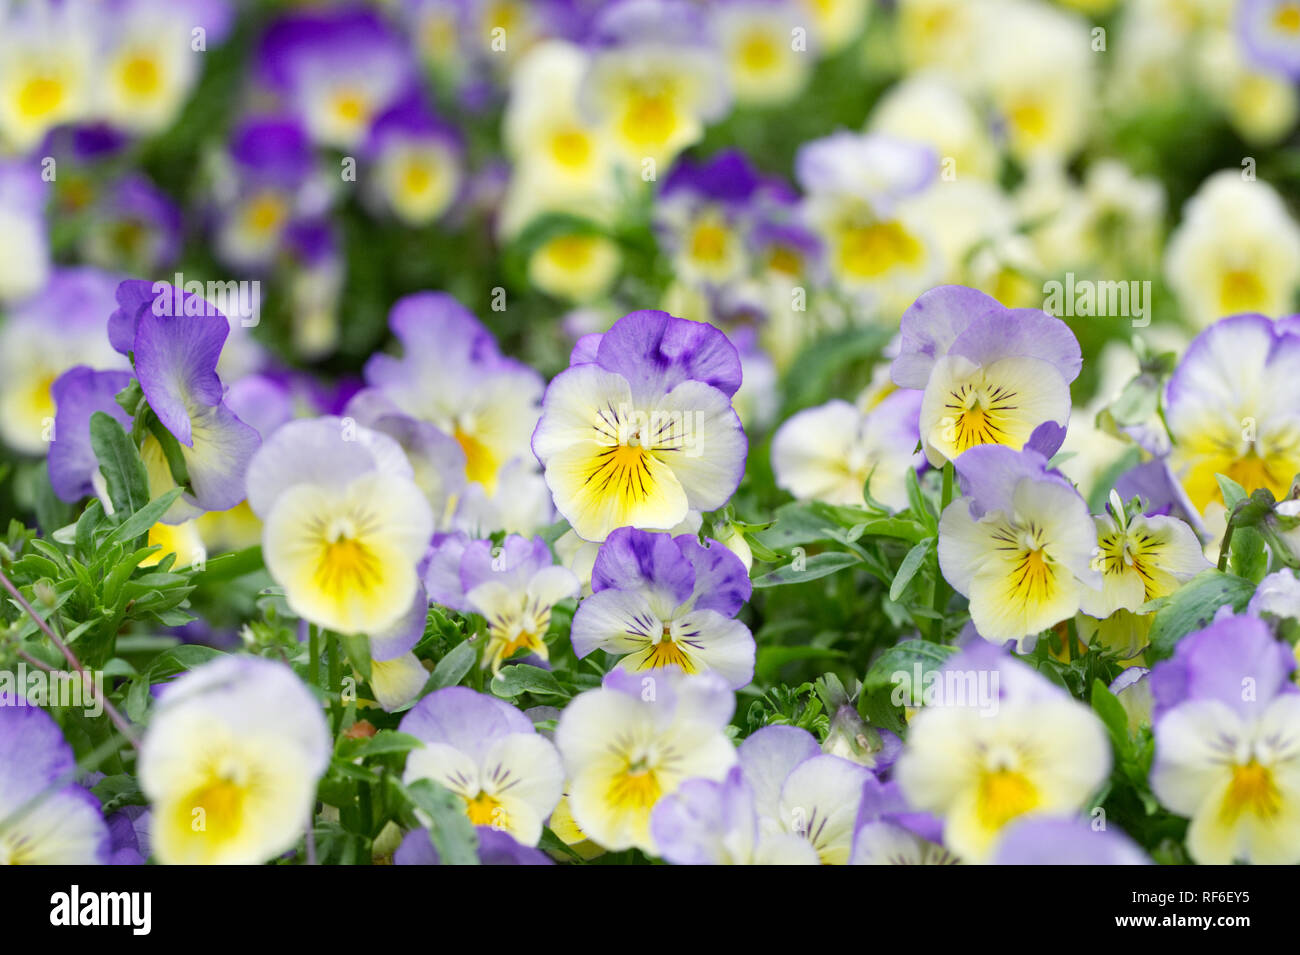 Viola x wittrockiana flowers. Pansy cool wave series. - Stock Image